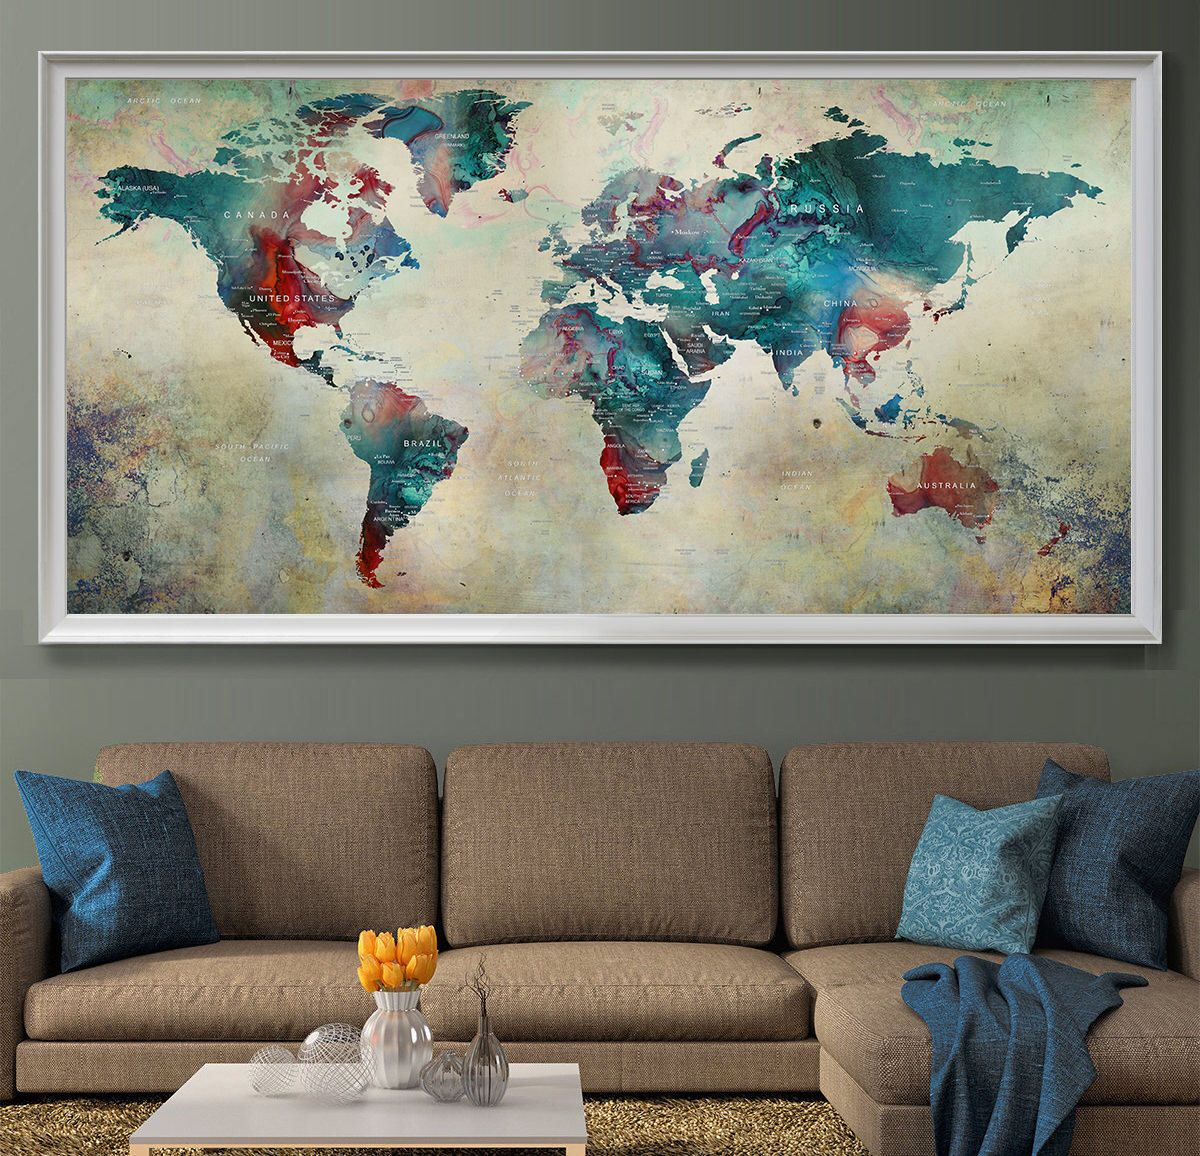 Extra large wall art world map painting abstract art room decor push extra large wall art world map painting abstract art room decor push pin map print watercolor gumiabroncs Image collections